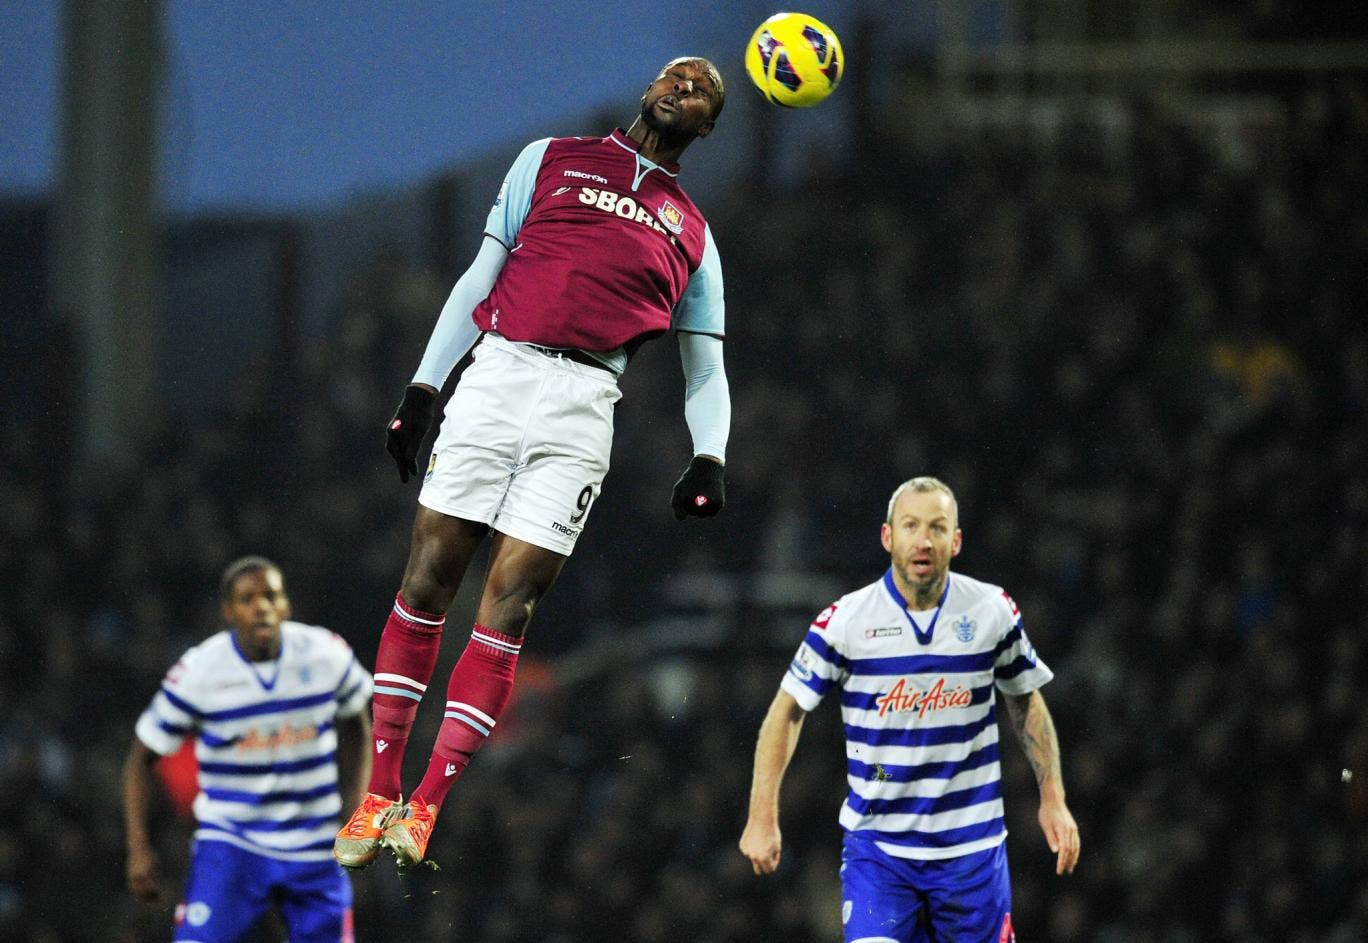 Carlton Cole in action for West Ham against Reading earlier in the season